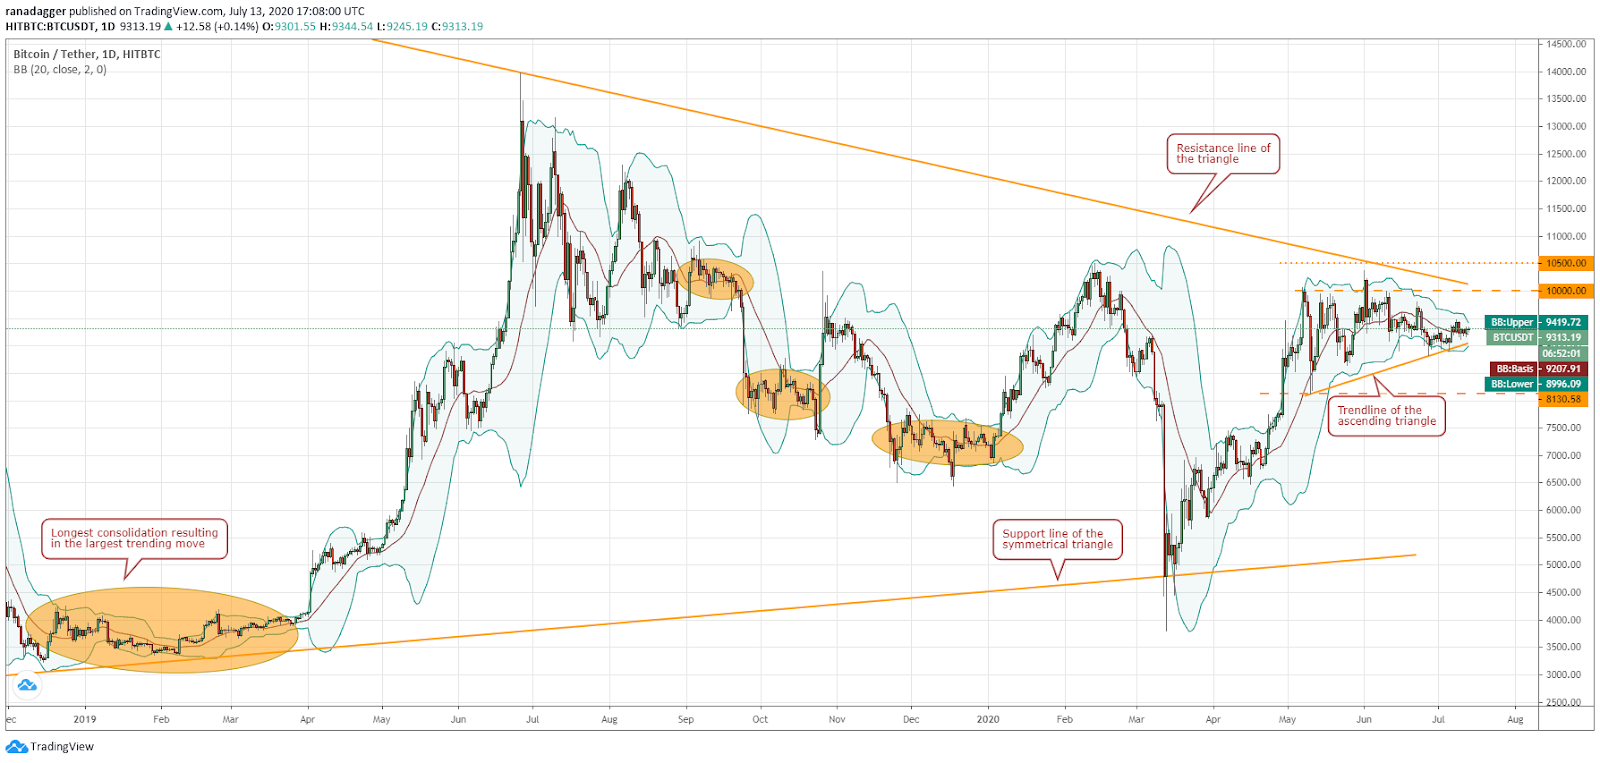 BTC/USD daily chart. Source: TradingView